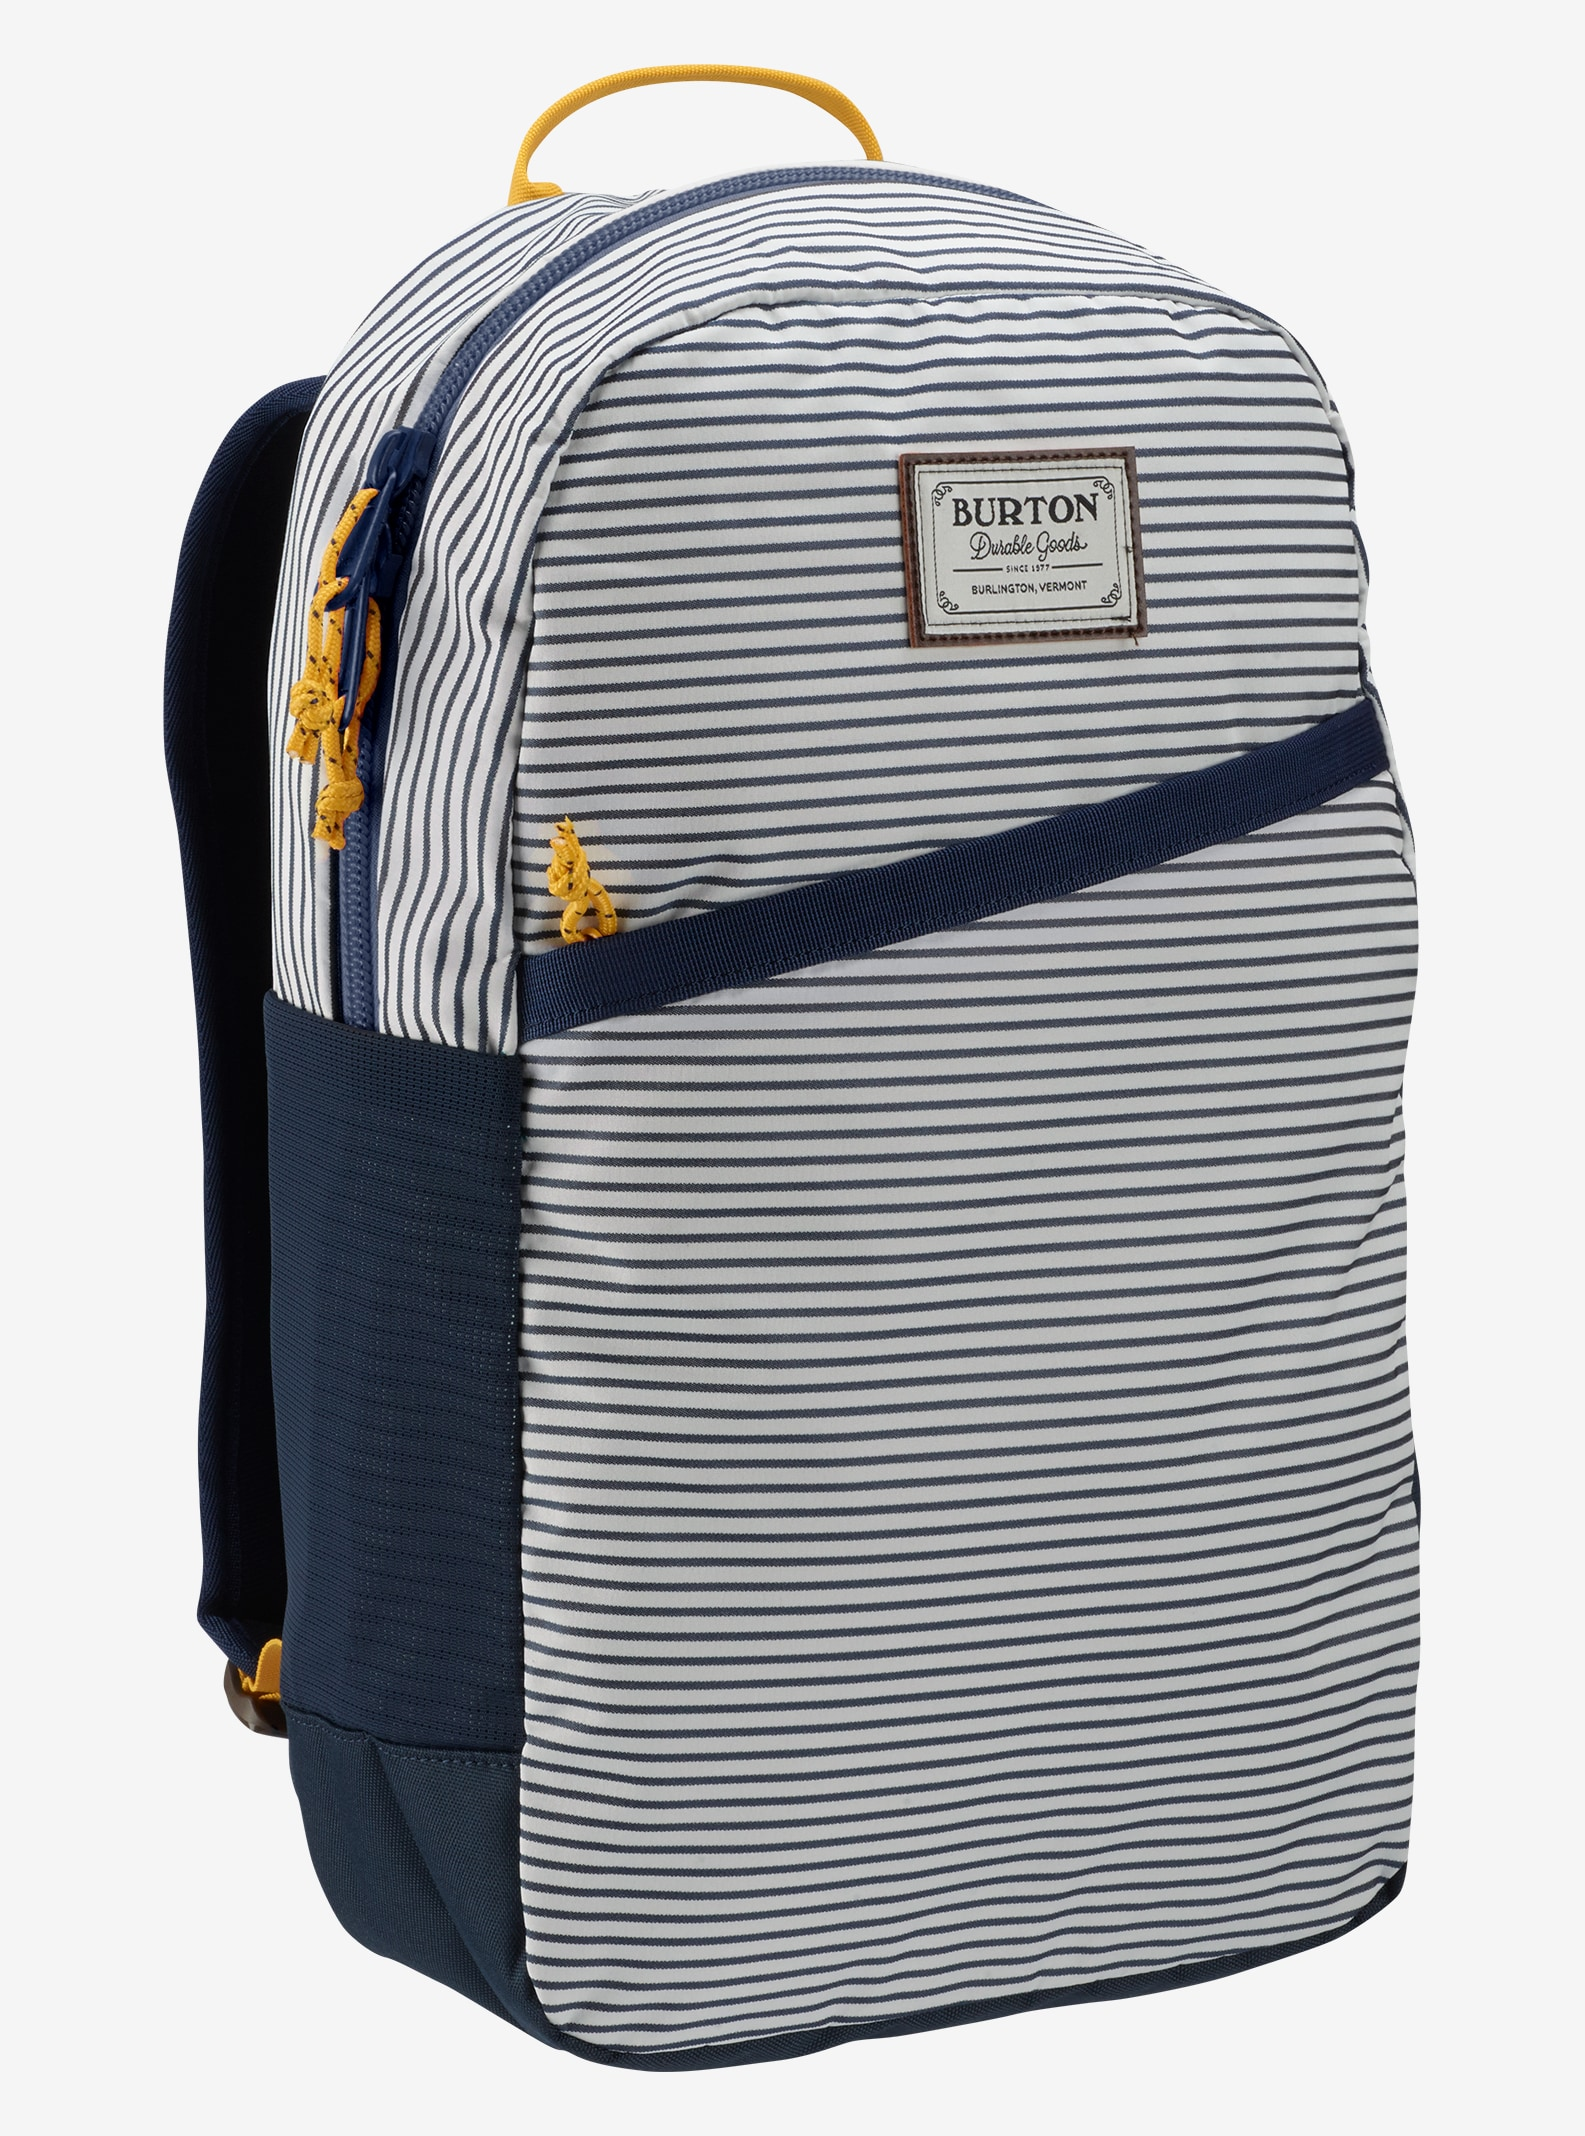 Burton Apollo Backpack shown in Eclipse Crinkle